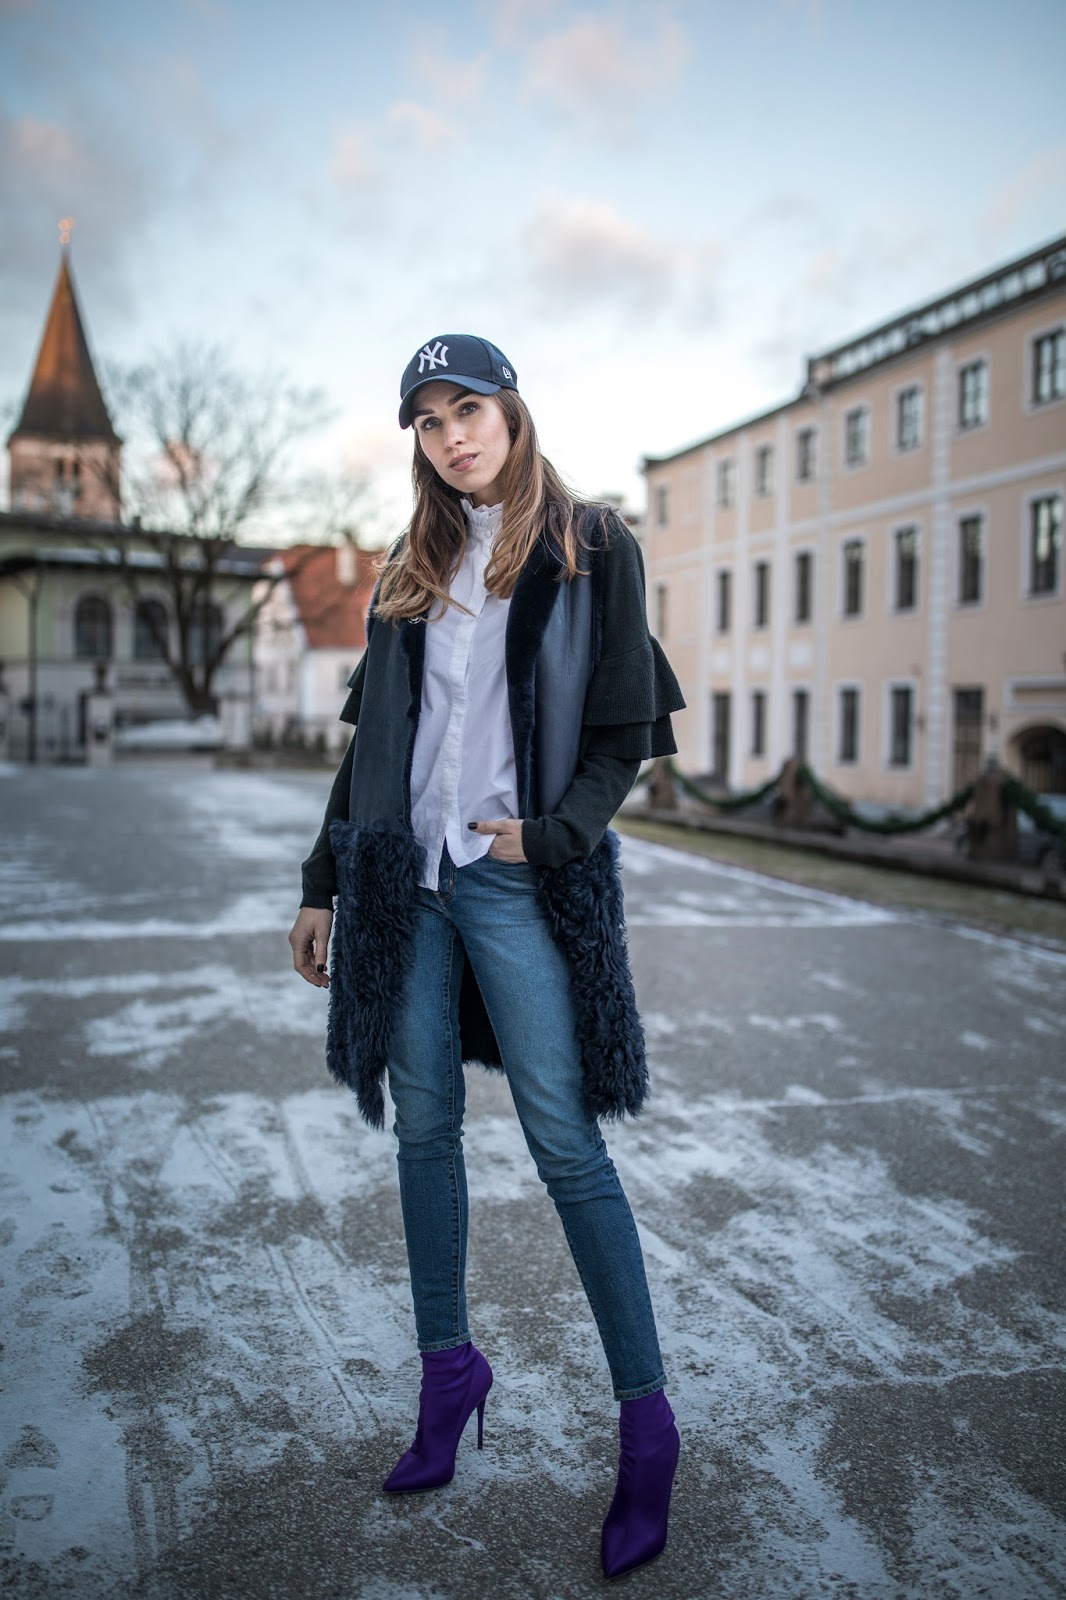 shearling vest jeans sock boots cap outfit winter